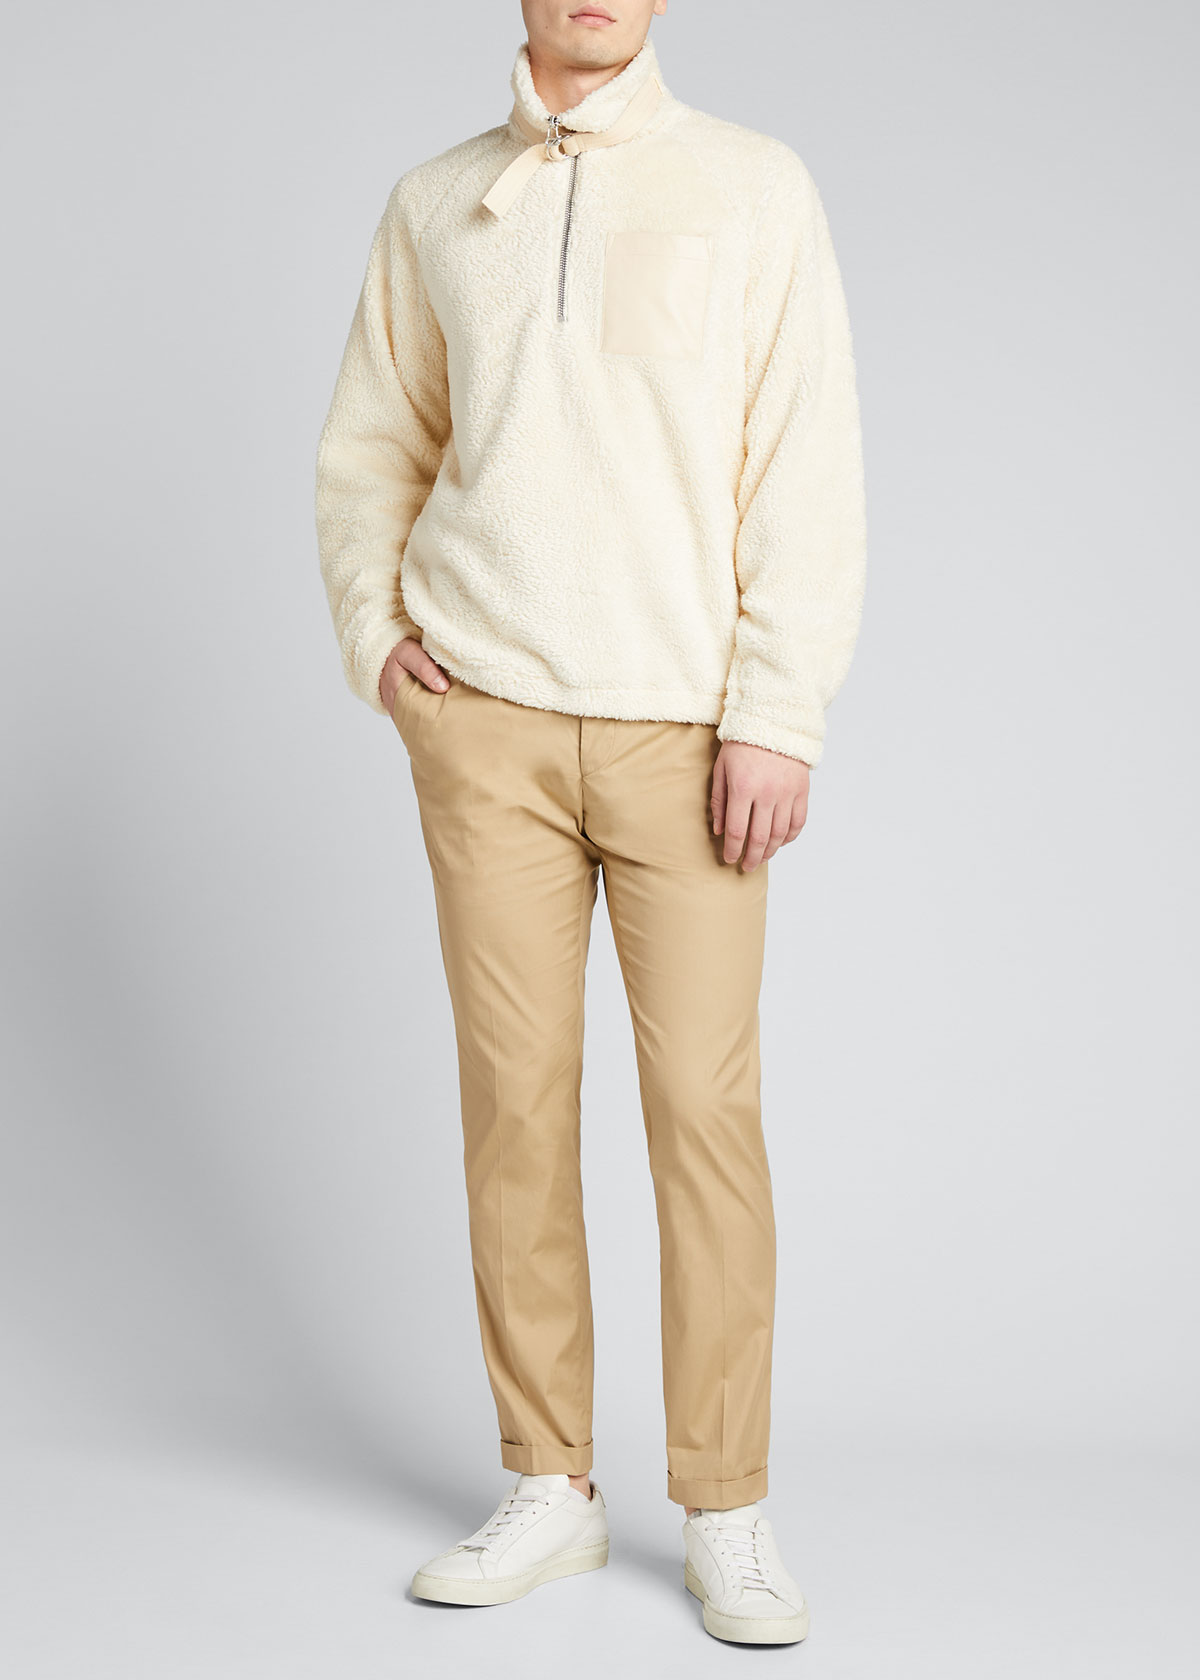 Helmut Lang MEN'S SHERPA BELTED-COLLAR PULLOVER SWEATER